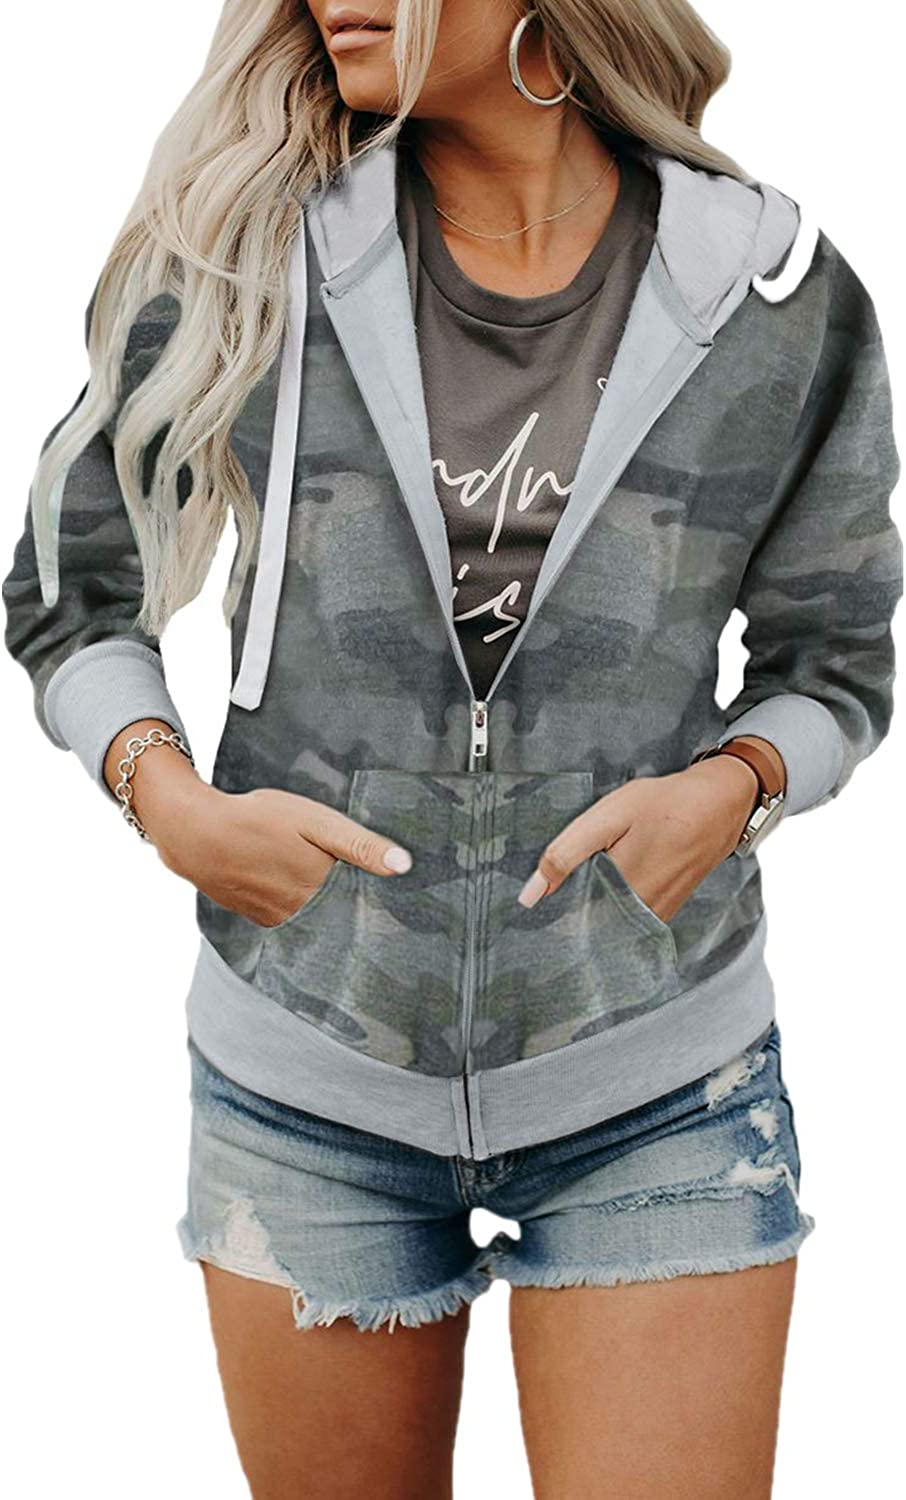 Actloe Womens Outerwear Casual Max 68% OFF Long Jacket Hoodie Zip-Up Sleeve Bombing new work